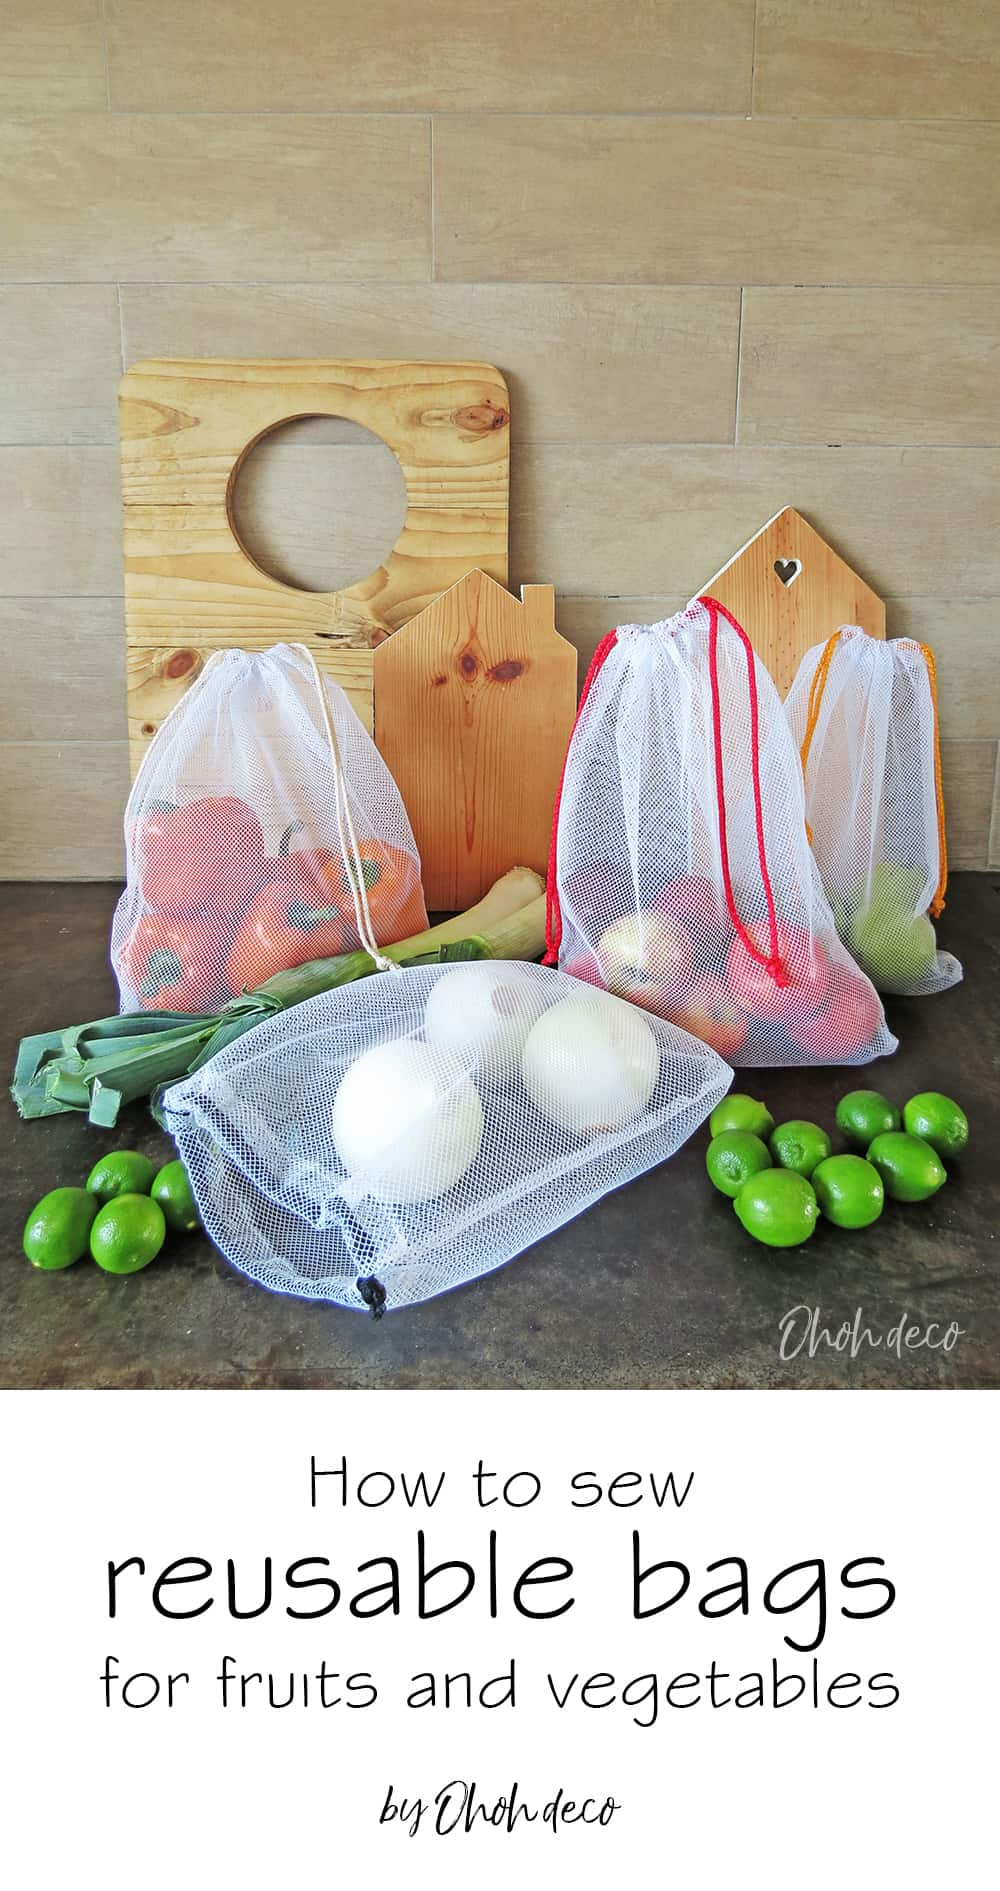 how to sew fruits and vegetables bags with tulle fabric #fabricbag #sewingtutorial #sustainable #green